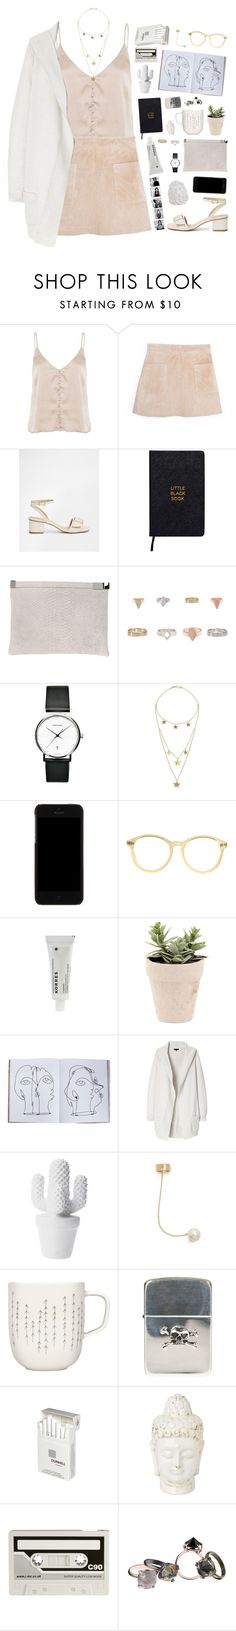 """""""My face lights up when I see you"""" by bomlion ❤ liked on Polyvore featuring MANGO, ASOS, Nomadic, Maison Margiela, Georg Jensen, Made, Dolce&Gabbana, American Apparel, Korres and Assouline Publishing"""